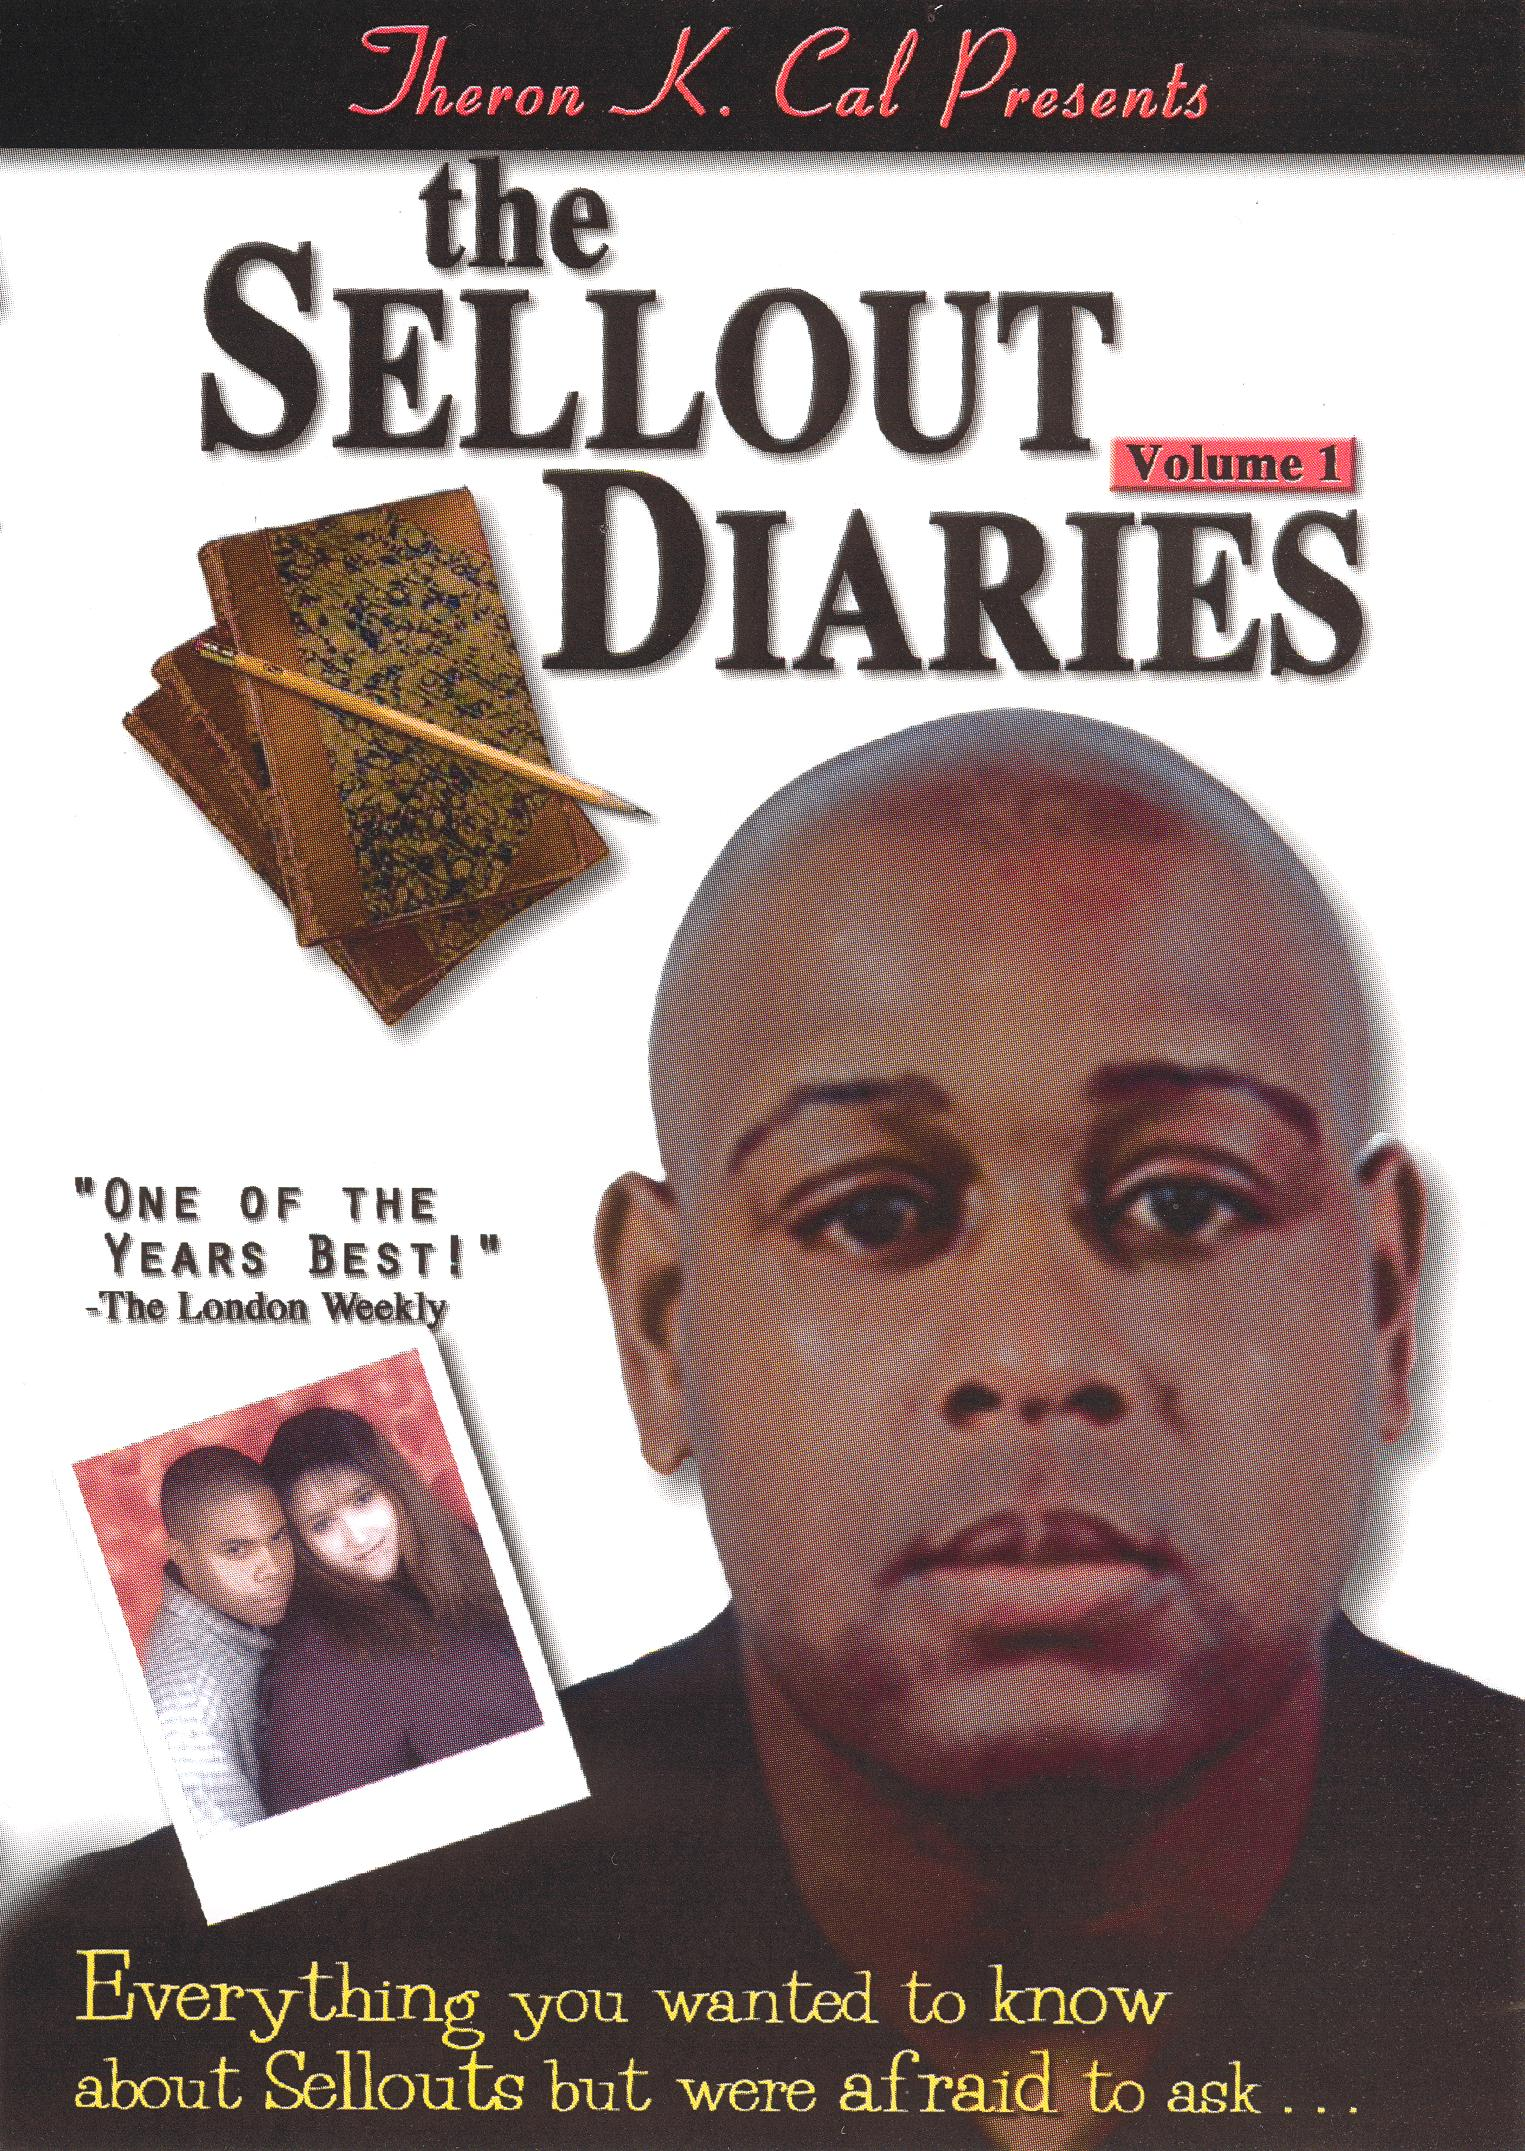 The Sellout Diaries, Vol. 1